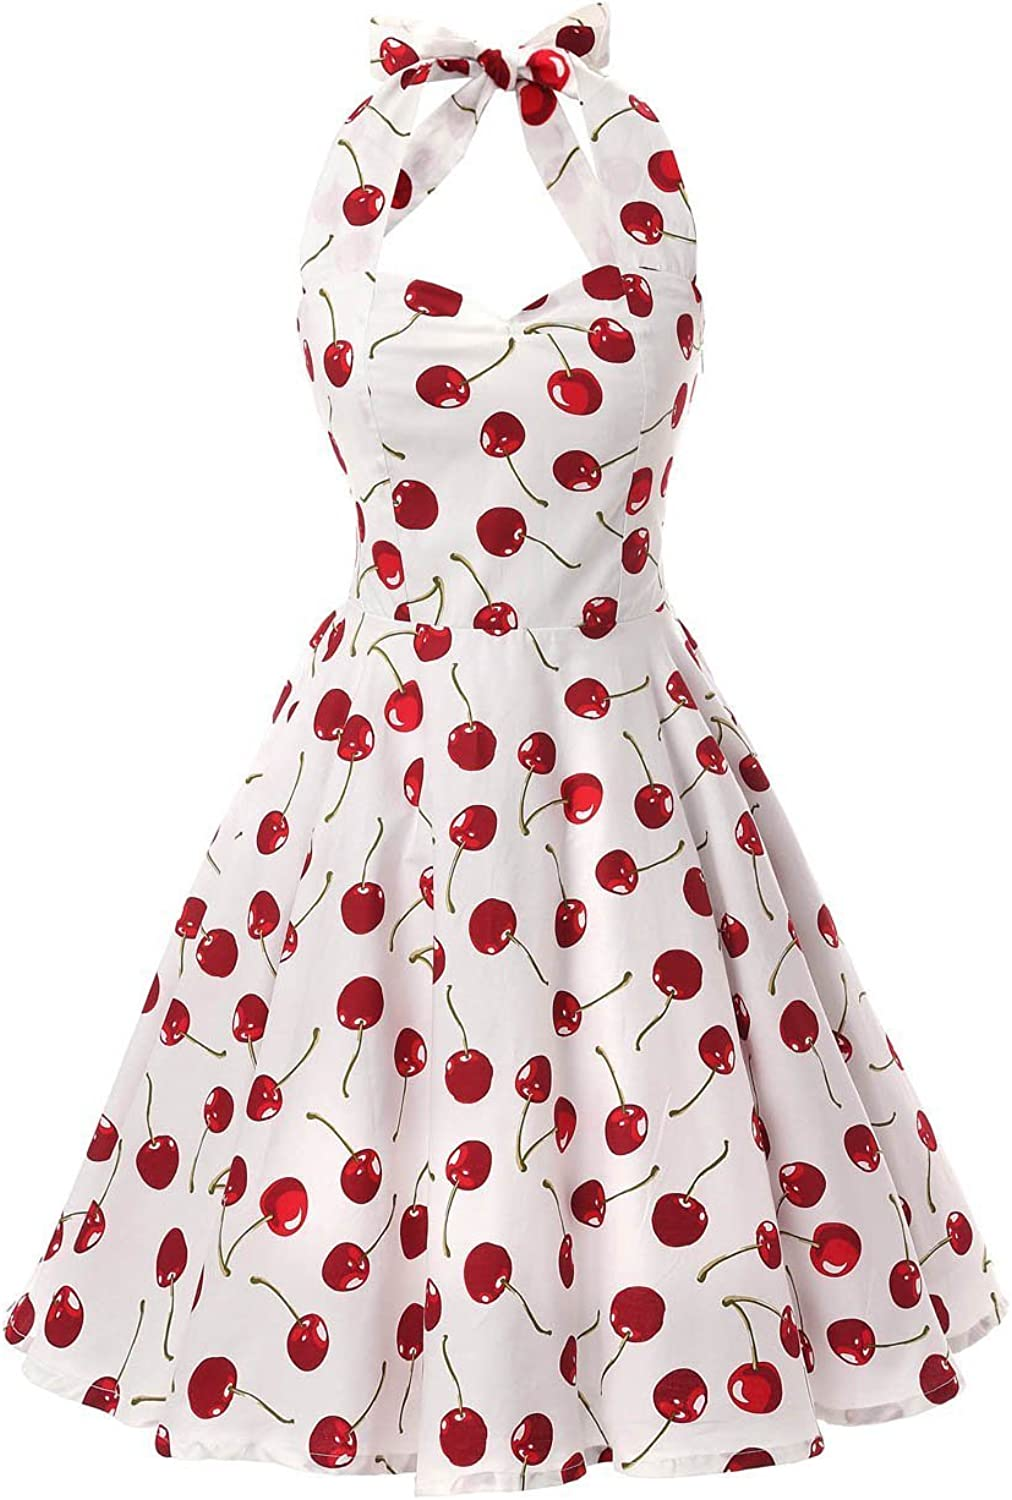 Ensnovo Womens Vintage 1950s Halter Floral Spring Garden Party Picnic Dress